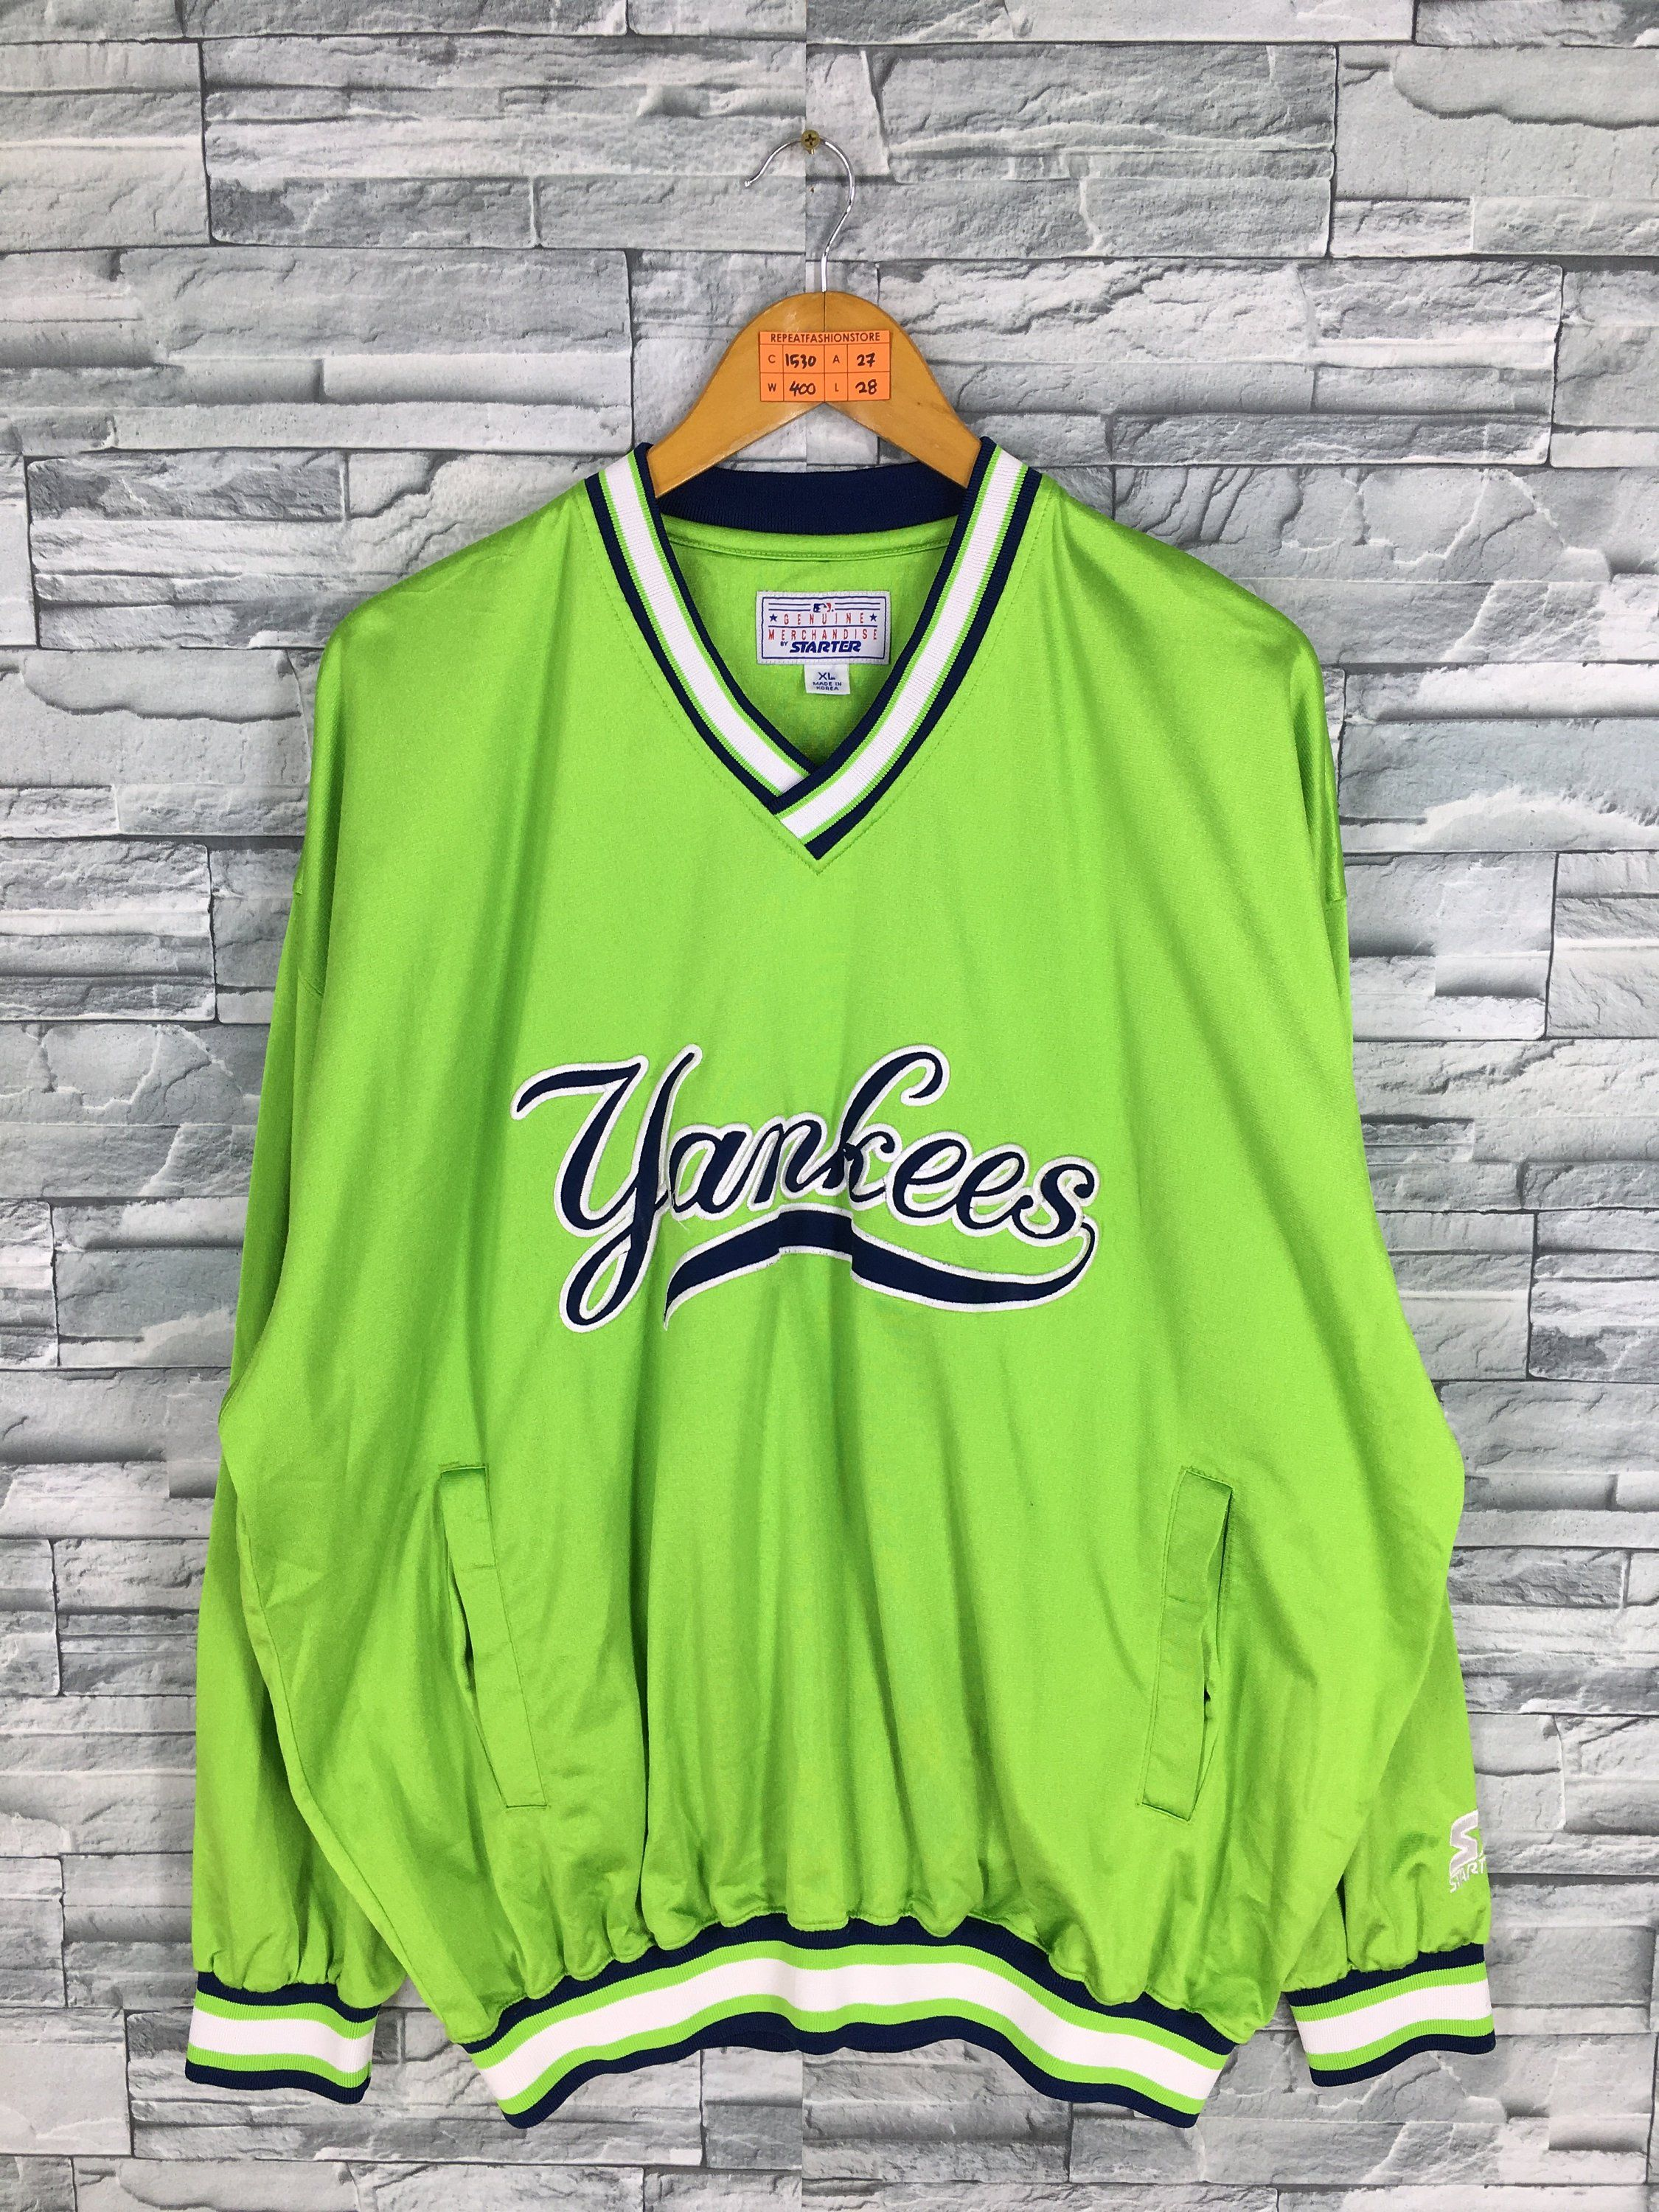 a07c5e720 NY YANKEES Pullover Jacket Xlarge Mens Vintage Baseball Team Mlb Starter  New York Yankees Baseball Polyester Sweatshirt Green Neon Size XL by ...